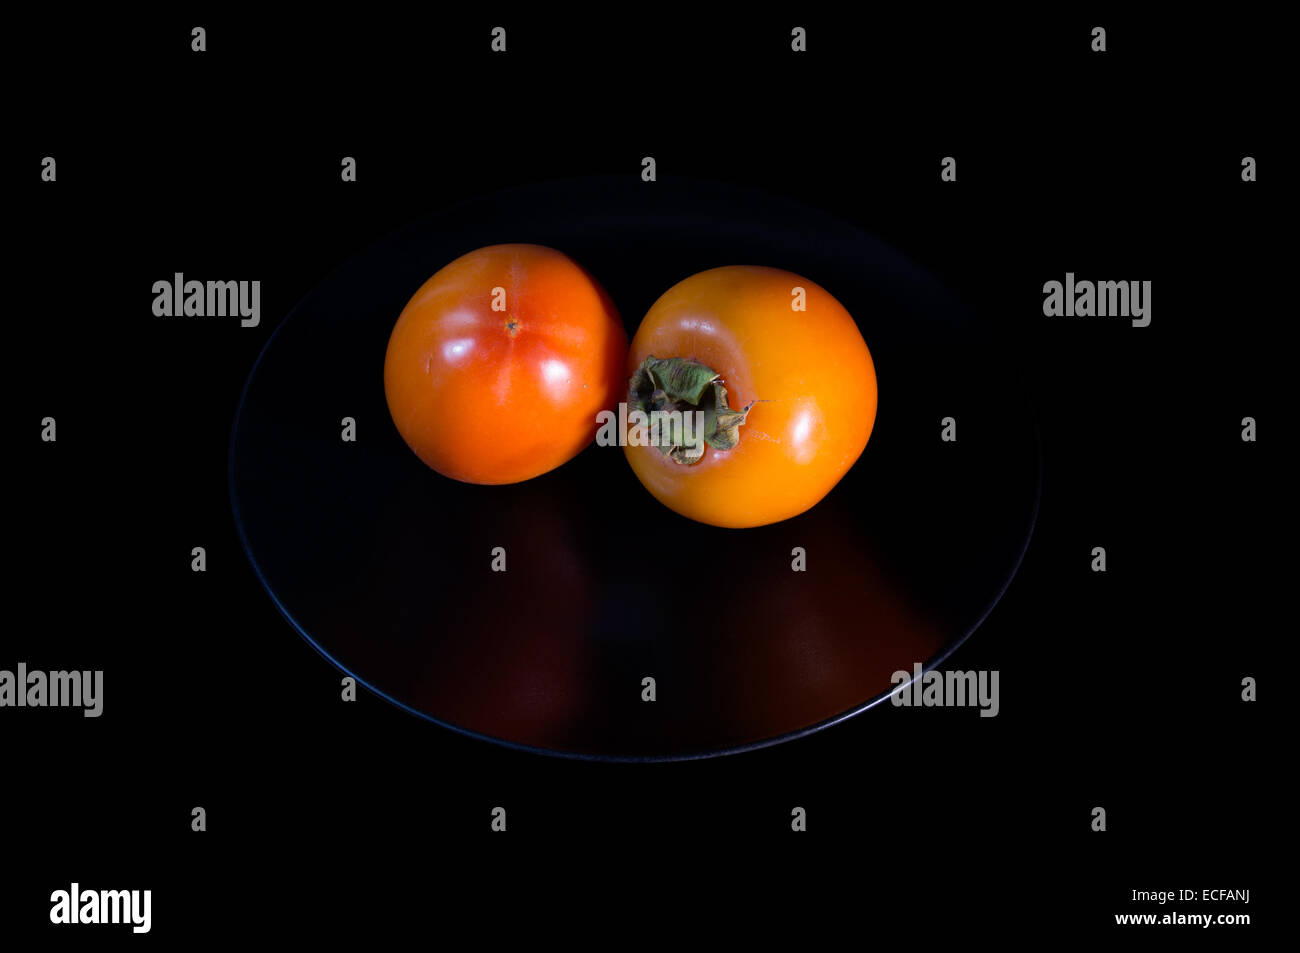 Ripe Golden two persimmons on plate - Stock Image